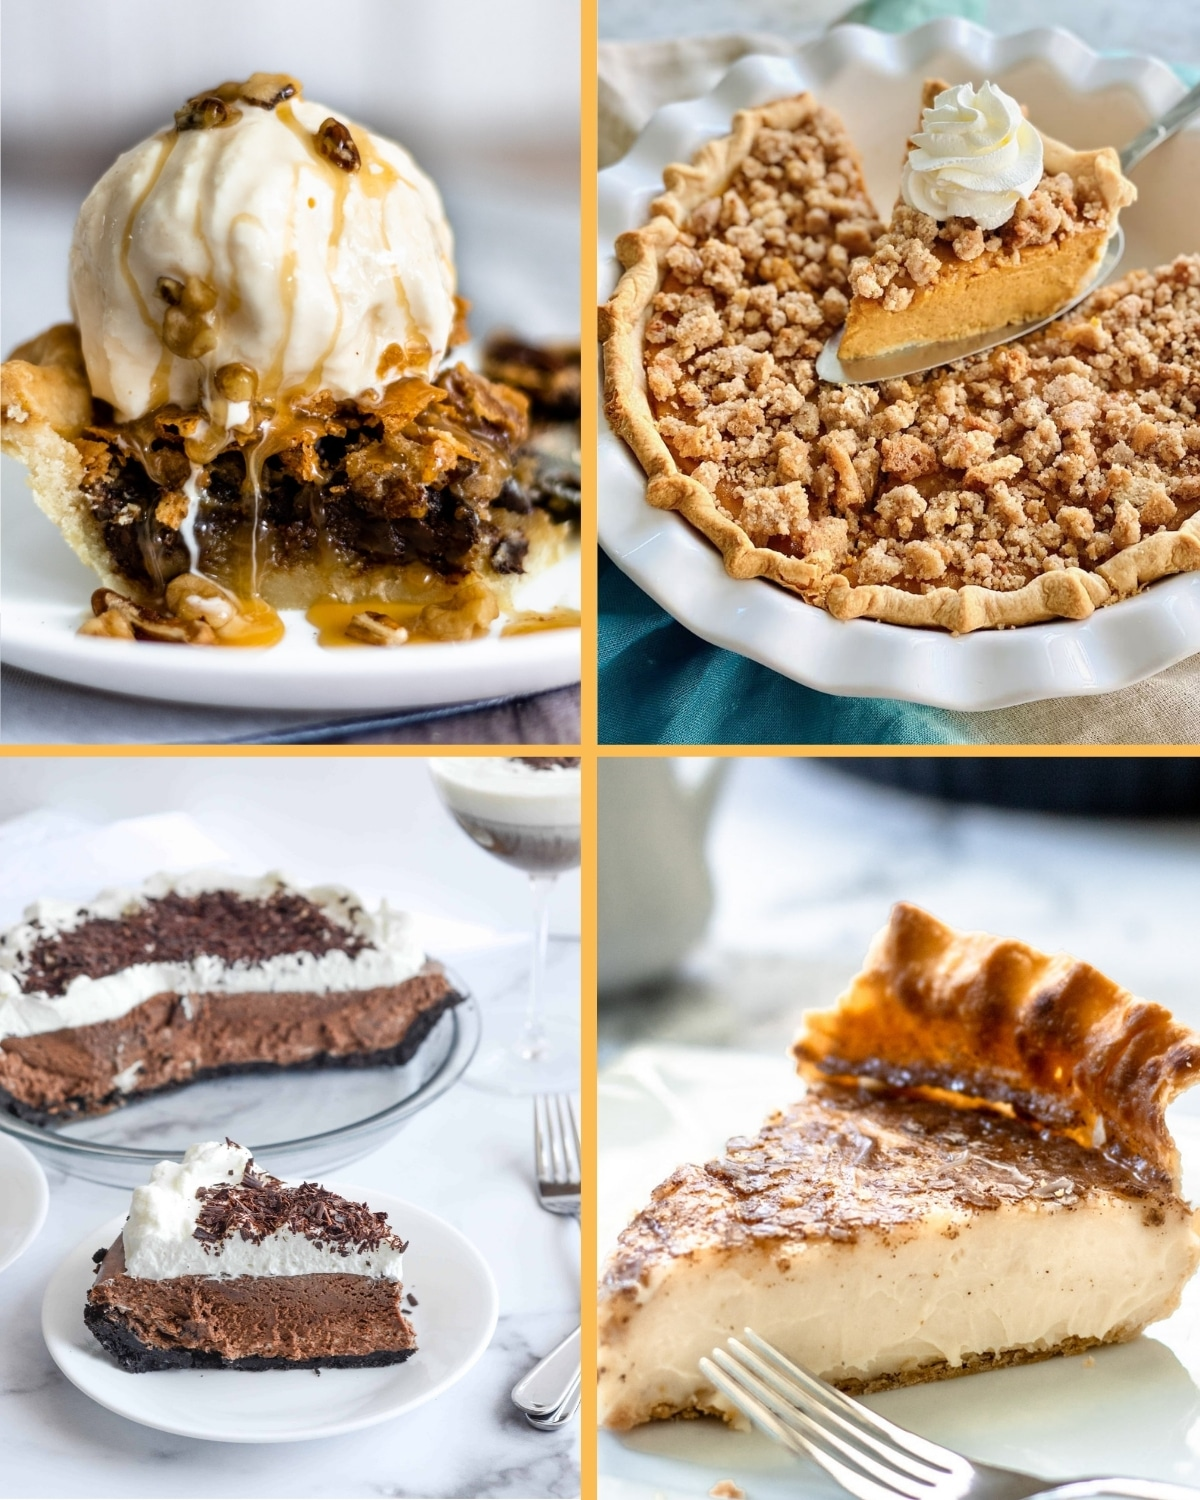 A collection of holiday pie recipes, featuring Chocolate Pecan, Snickerdoodle Pumpkin, Chocolate Espresso Silk, and Sugar Cream.